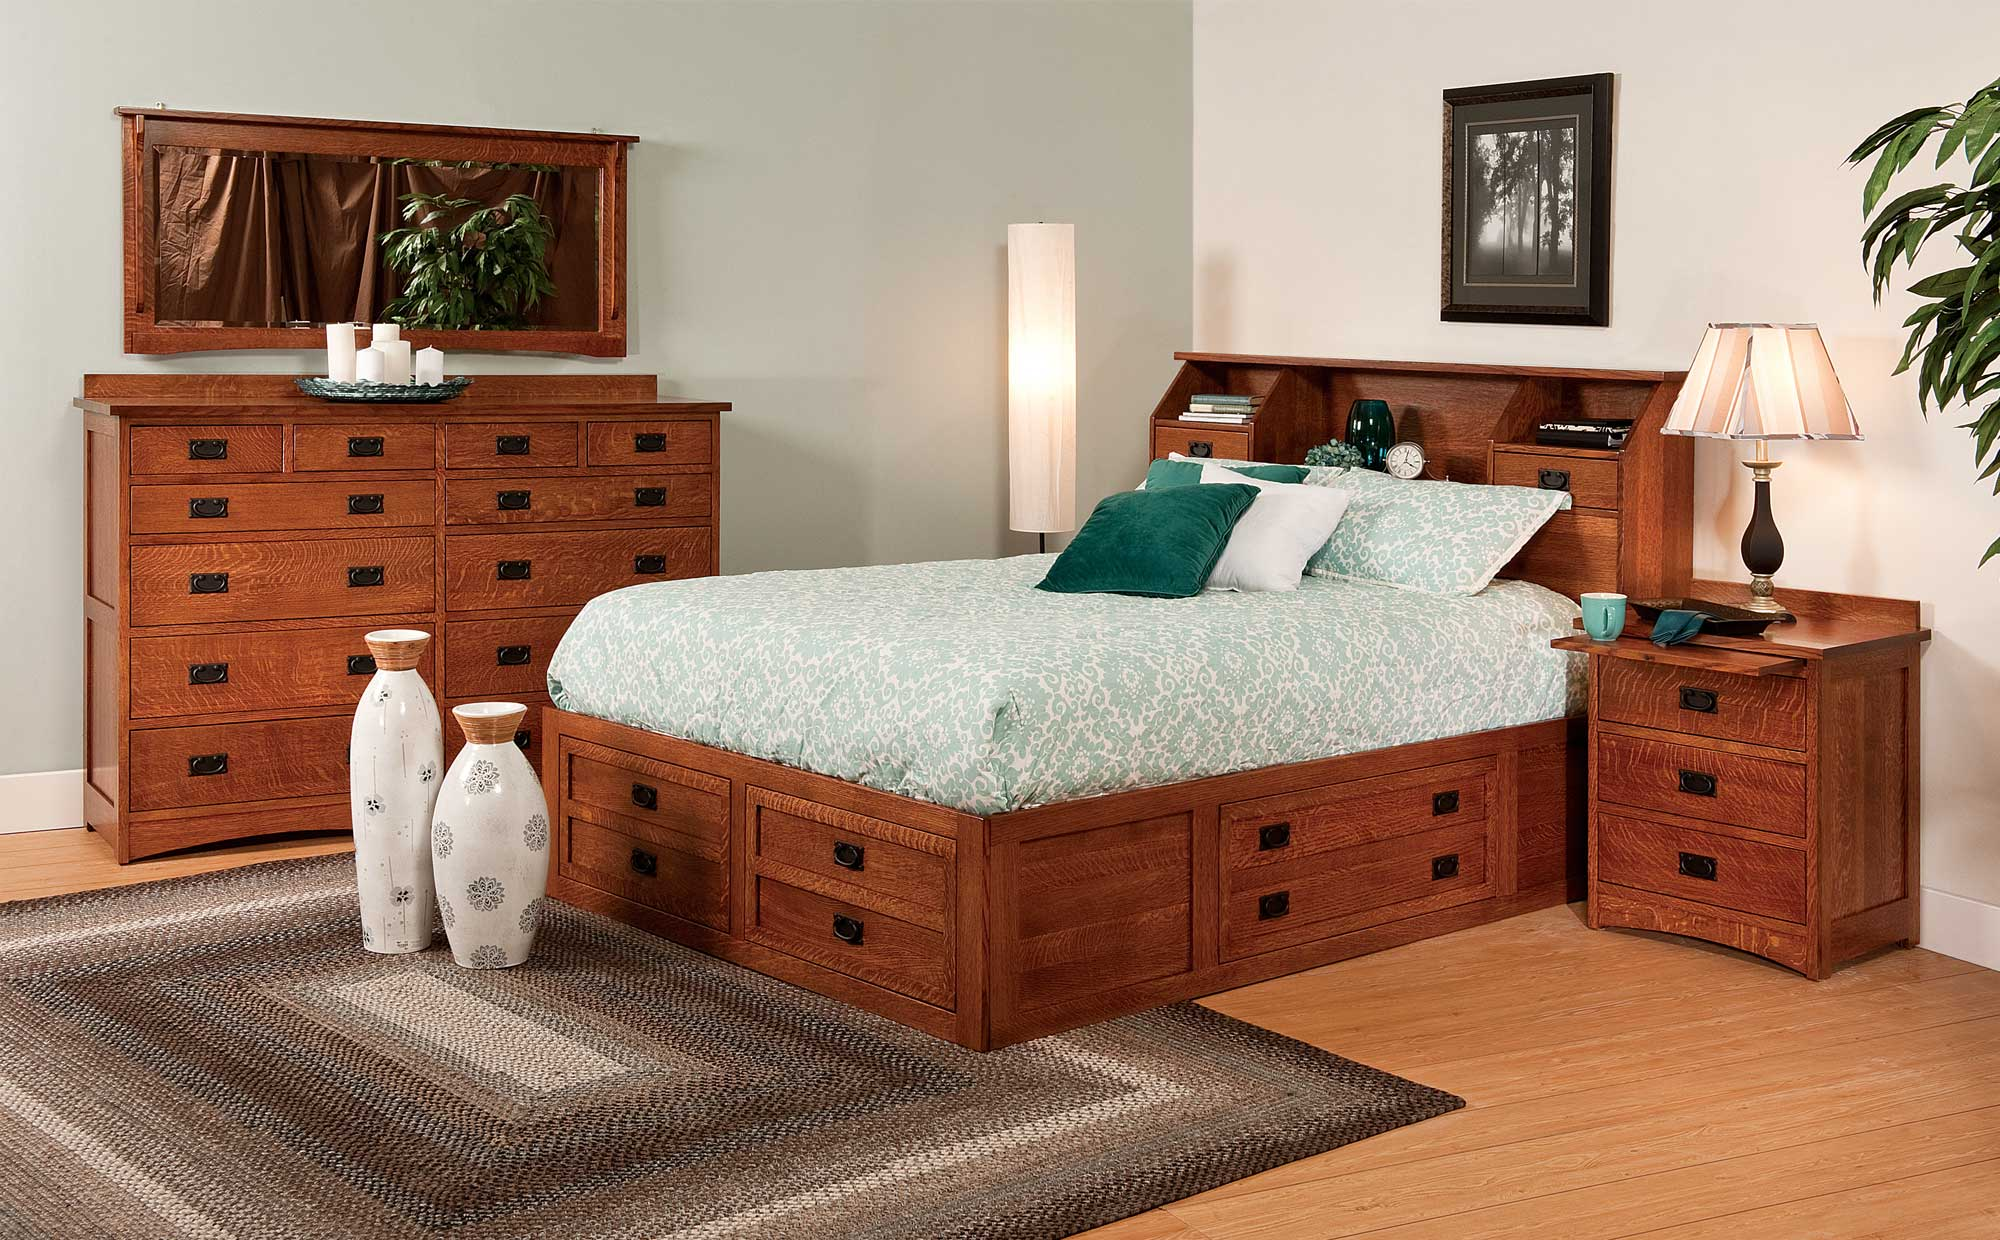 Jacobson bed amish direct furniture - Amish bedroom furniture ...